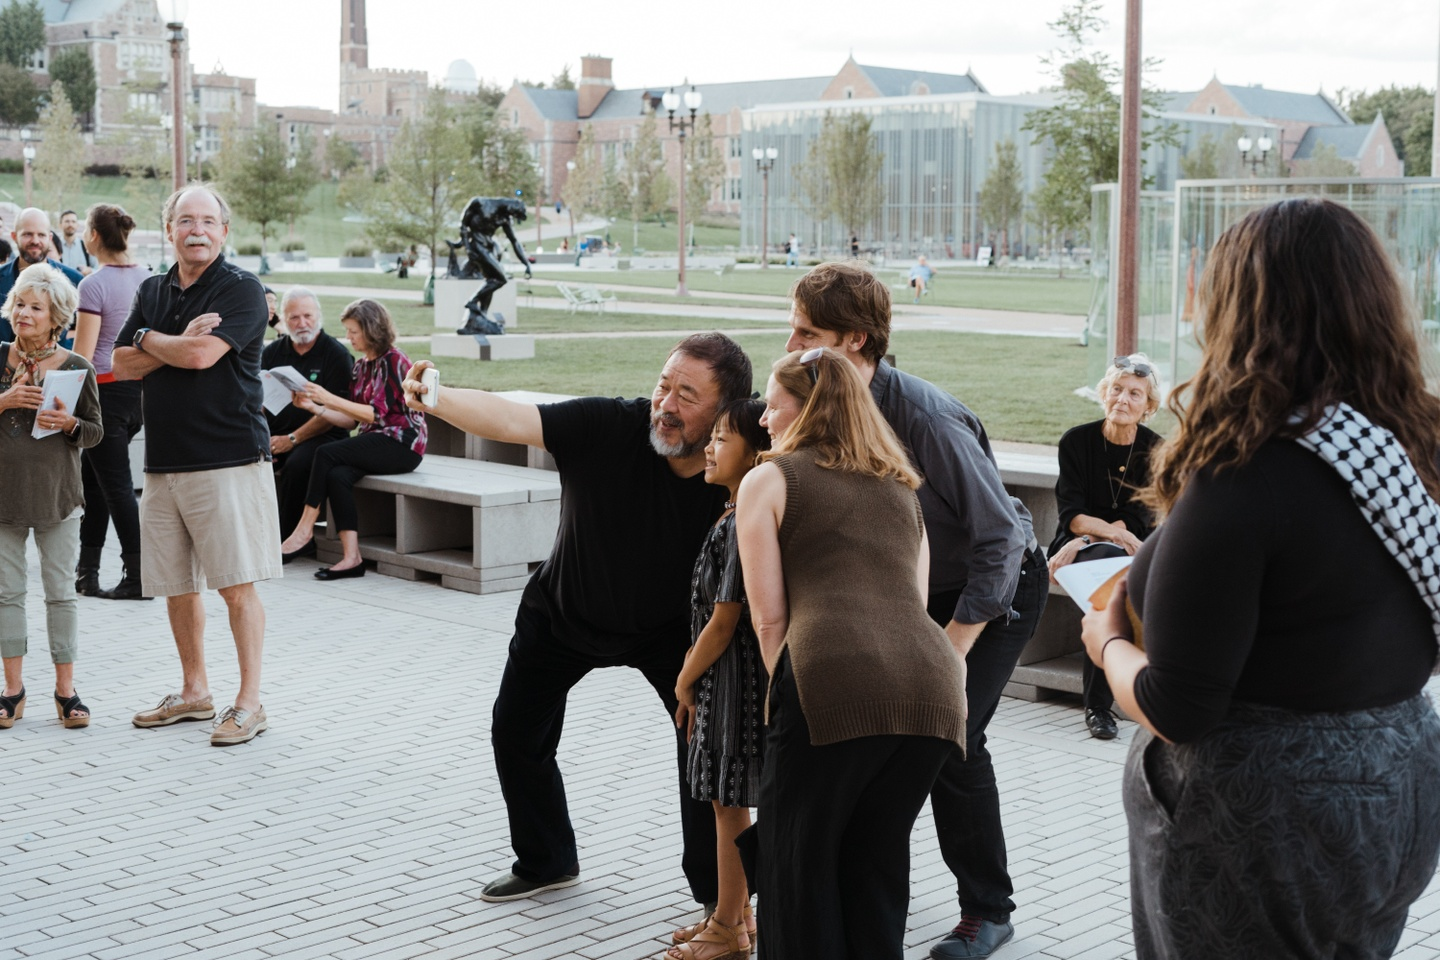 Artist Ai Weiwei takes a selfie with a few attendees at his exhibition opening. Everyone is gathered outside, in front of the green park area outside the Kemper Art Museum; other onlookers and patrons mingle.